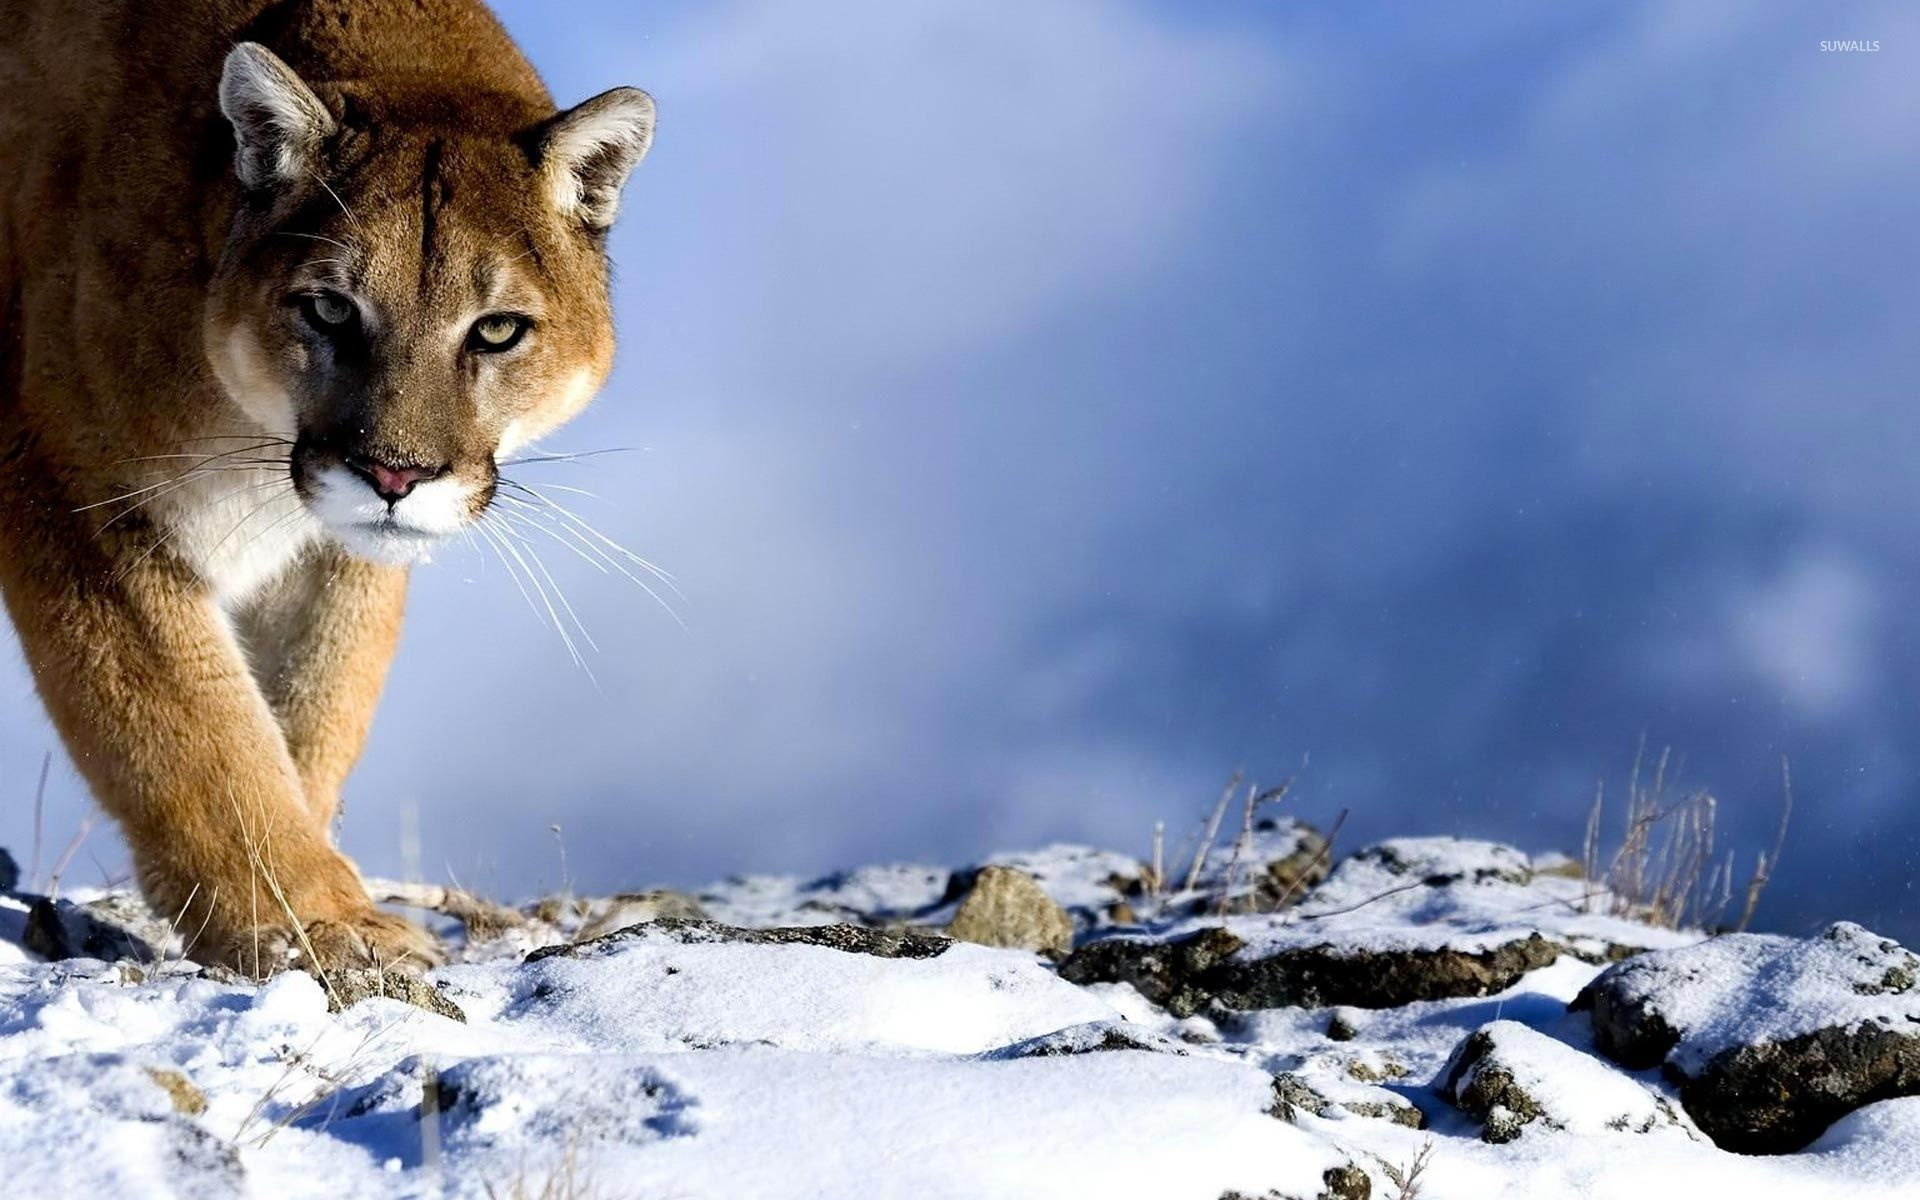 Strong Wallpapers Quotes Cougar In The Snow Wallpaper Animal Wallpapers 53338